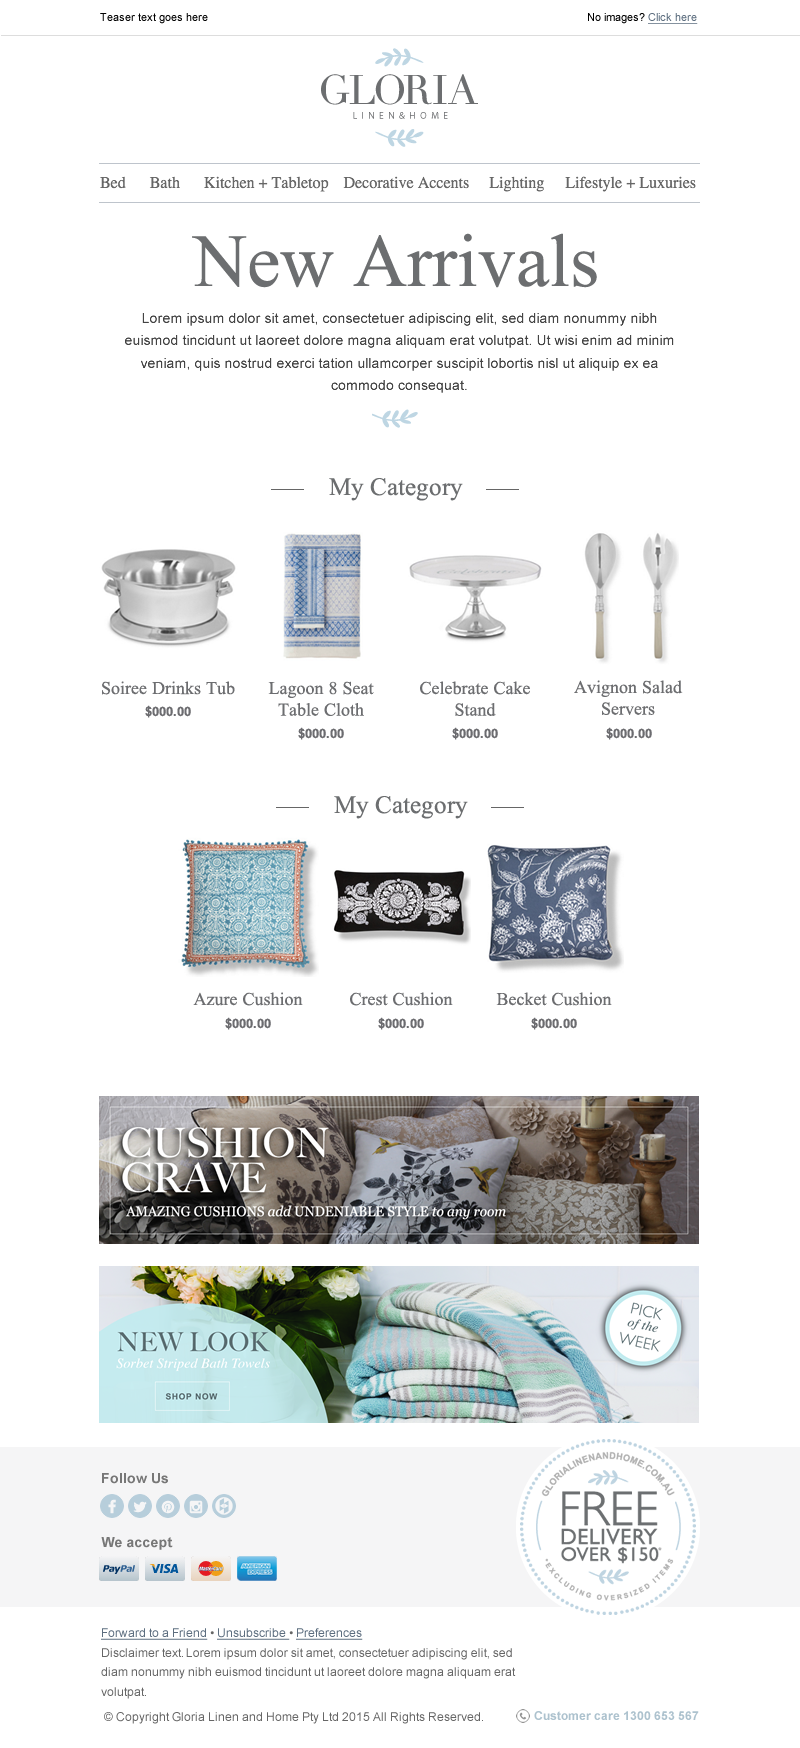 Image of Gloria newsletters with the text New Arrivals